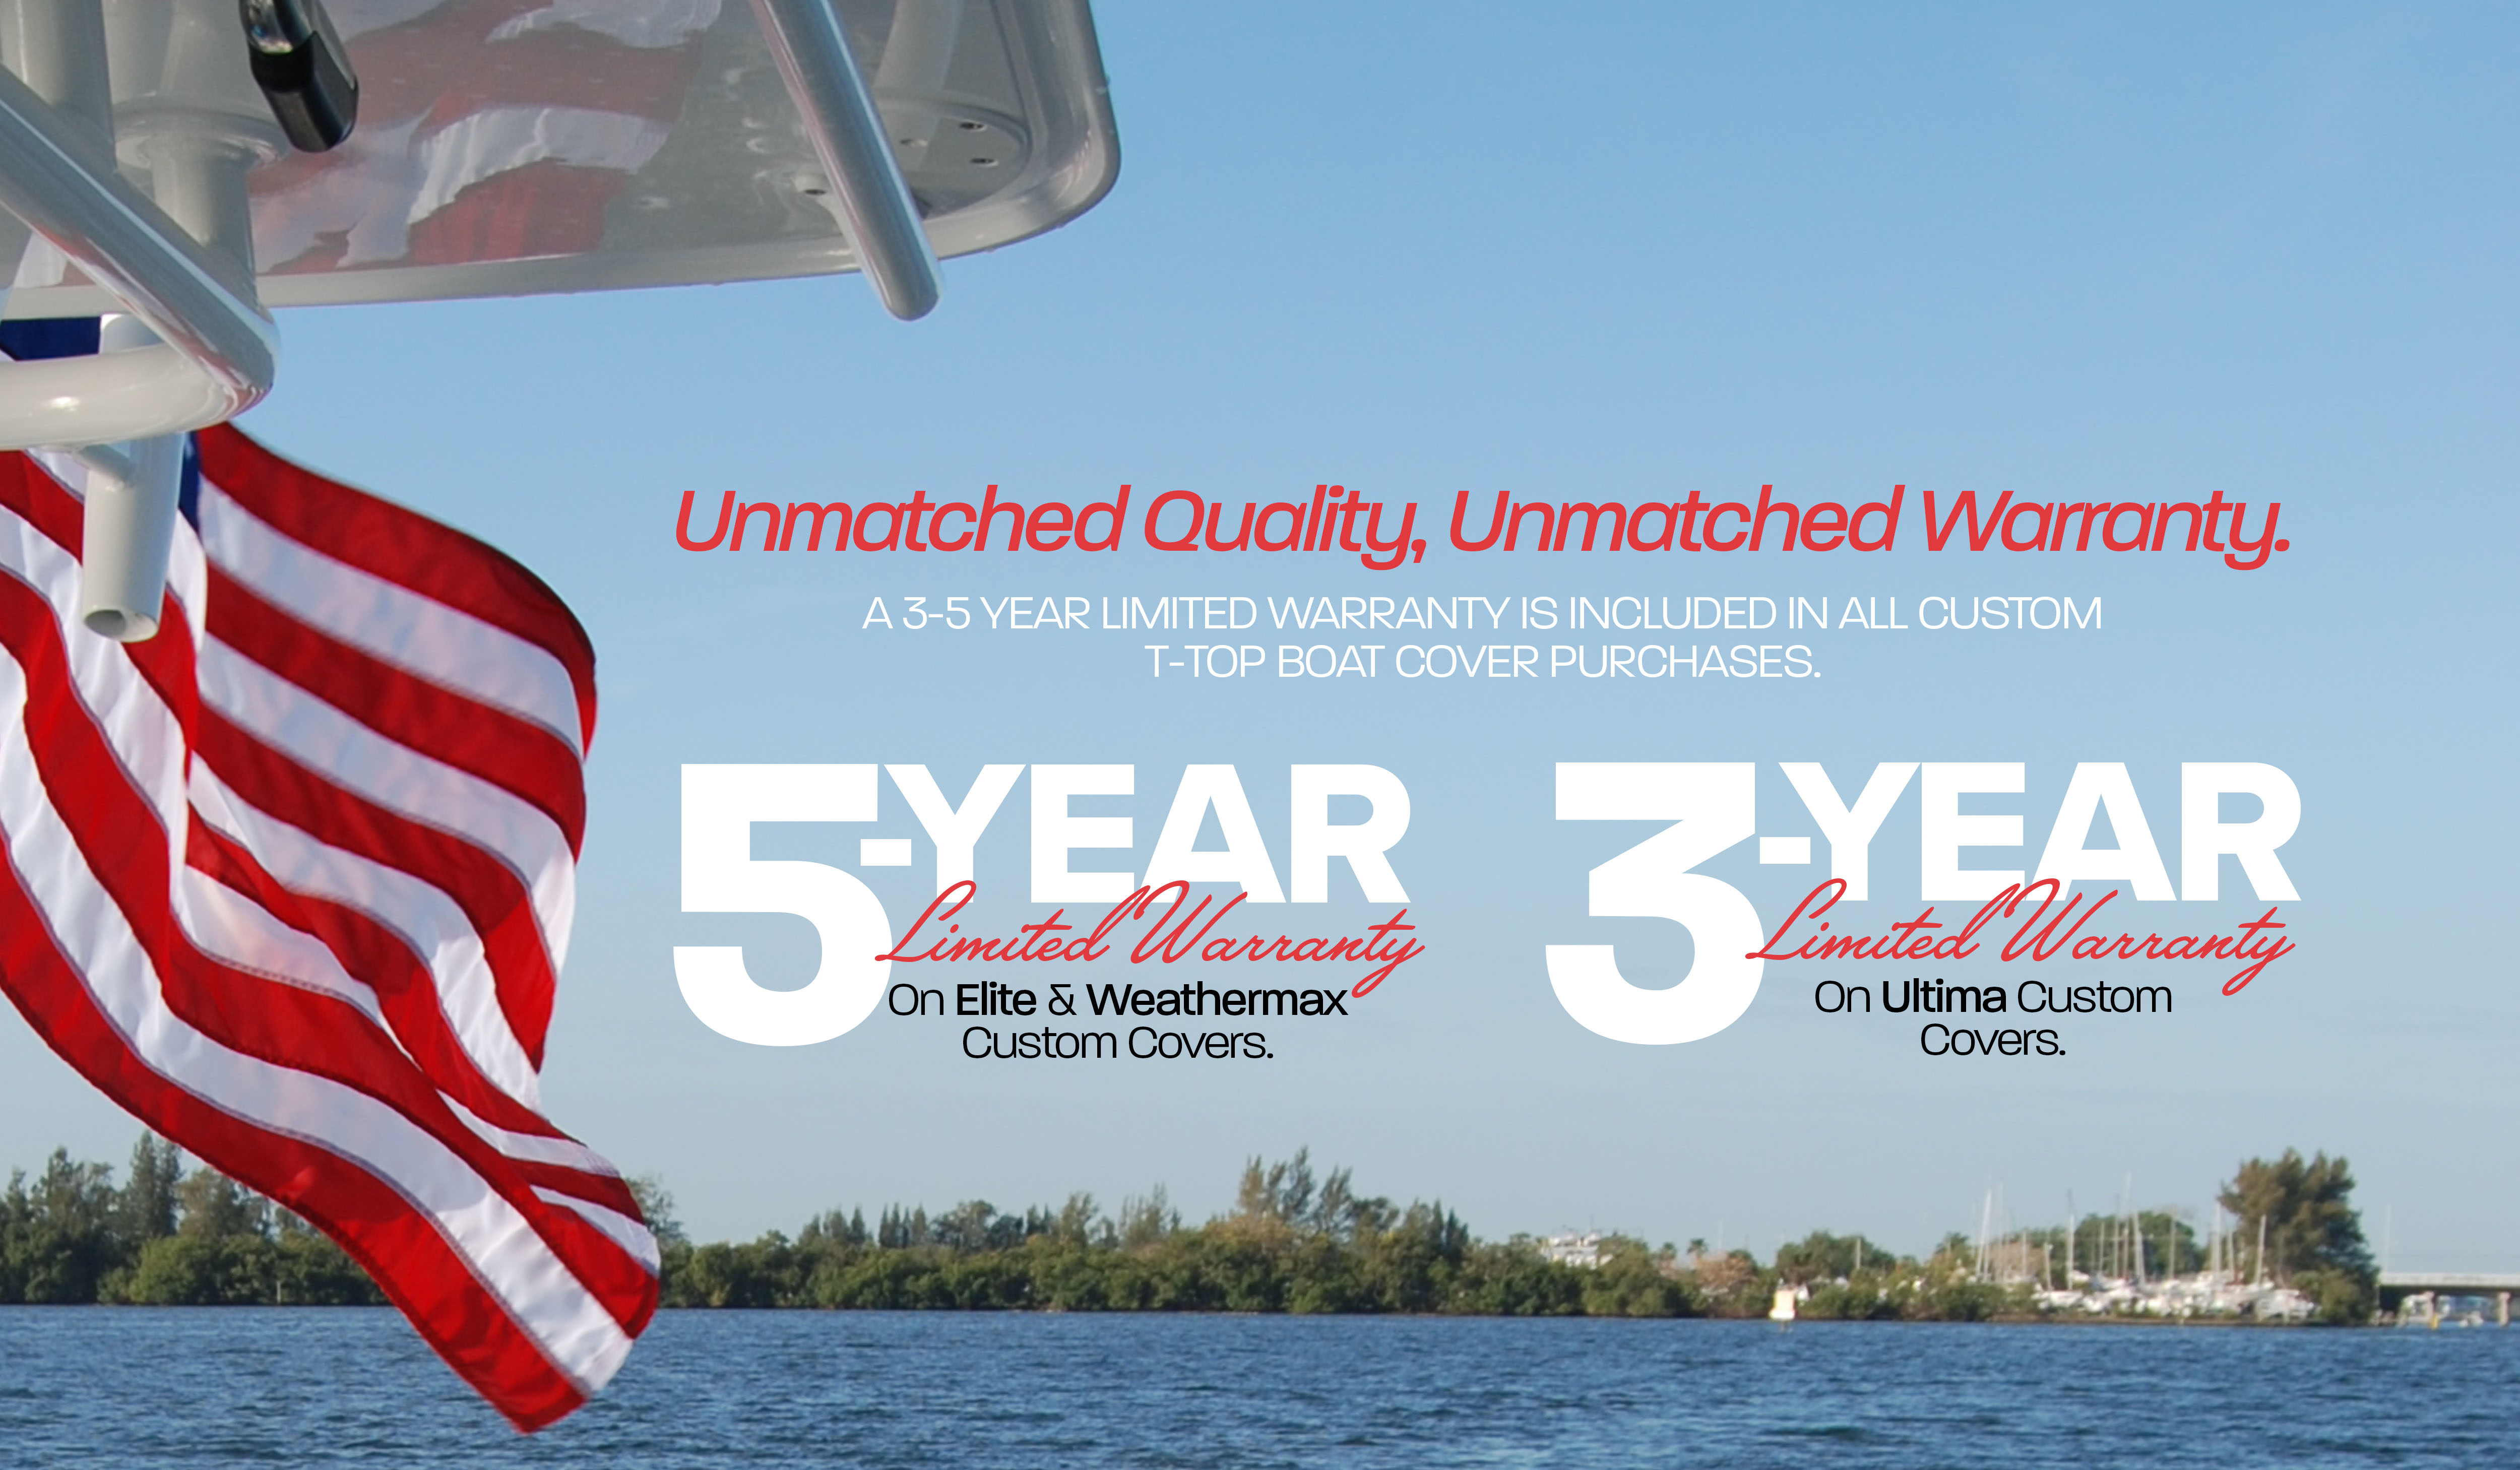 Warranties on Taylor Made Custom T-Top Boat Covers